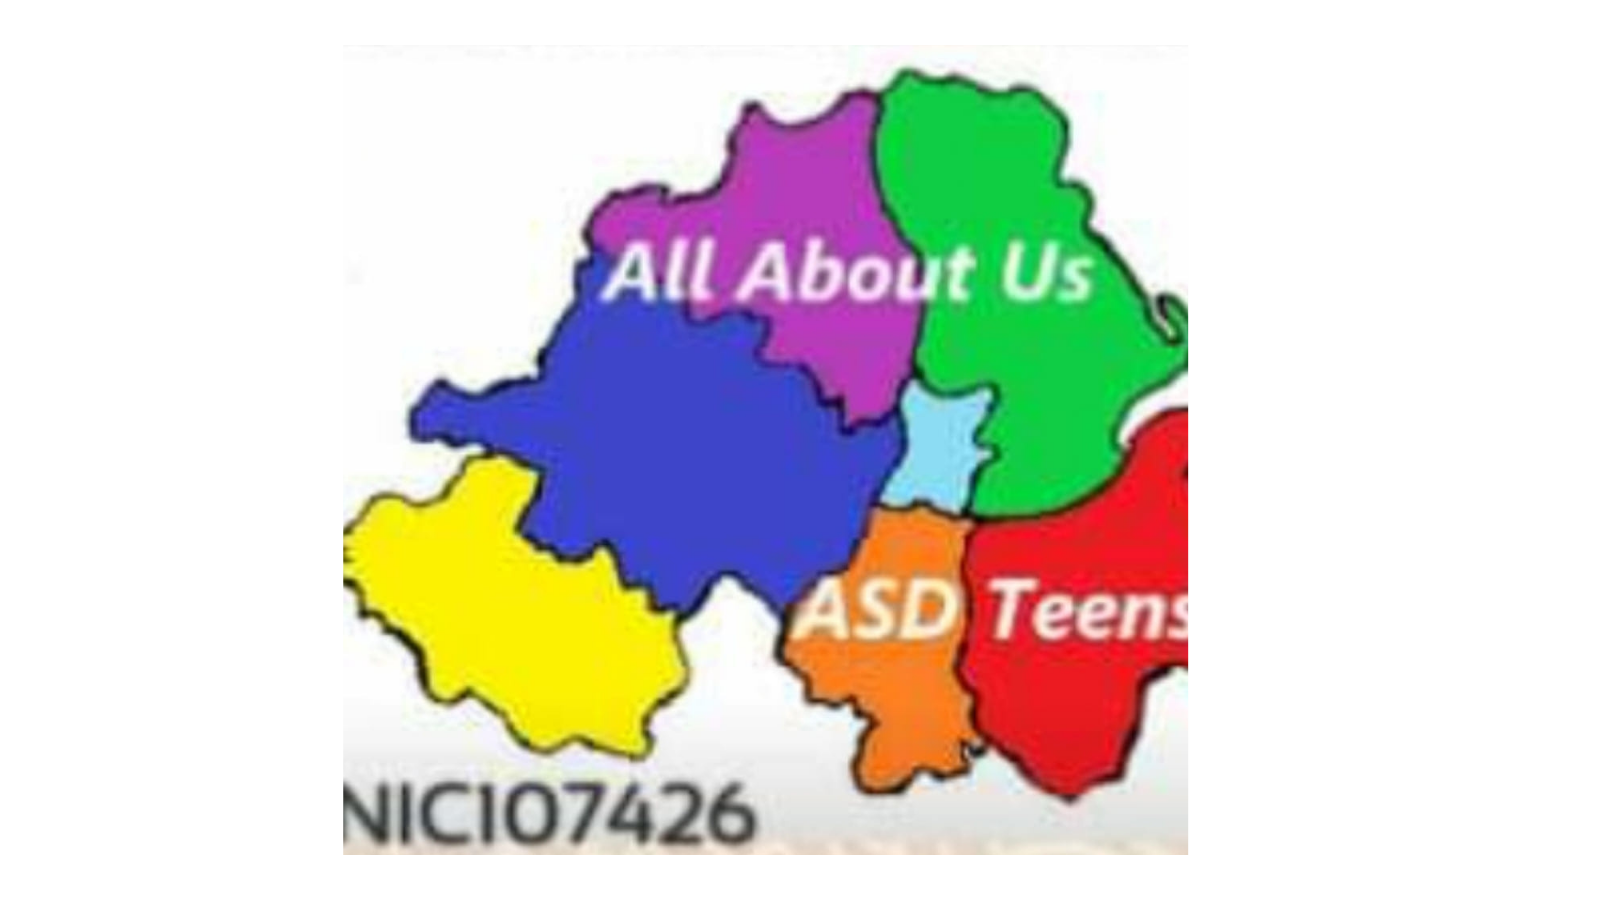 All About Us ASD Teens